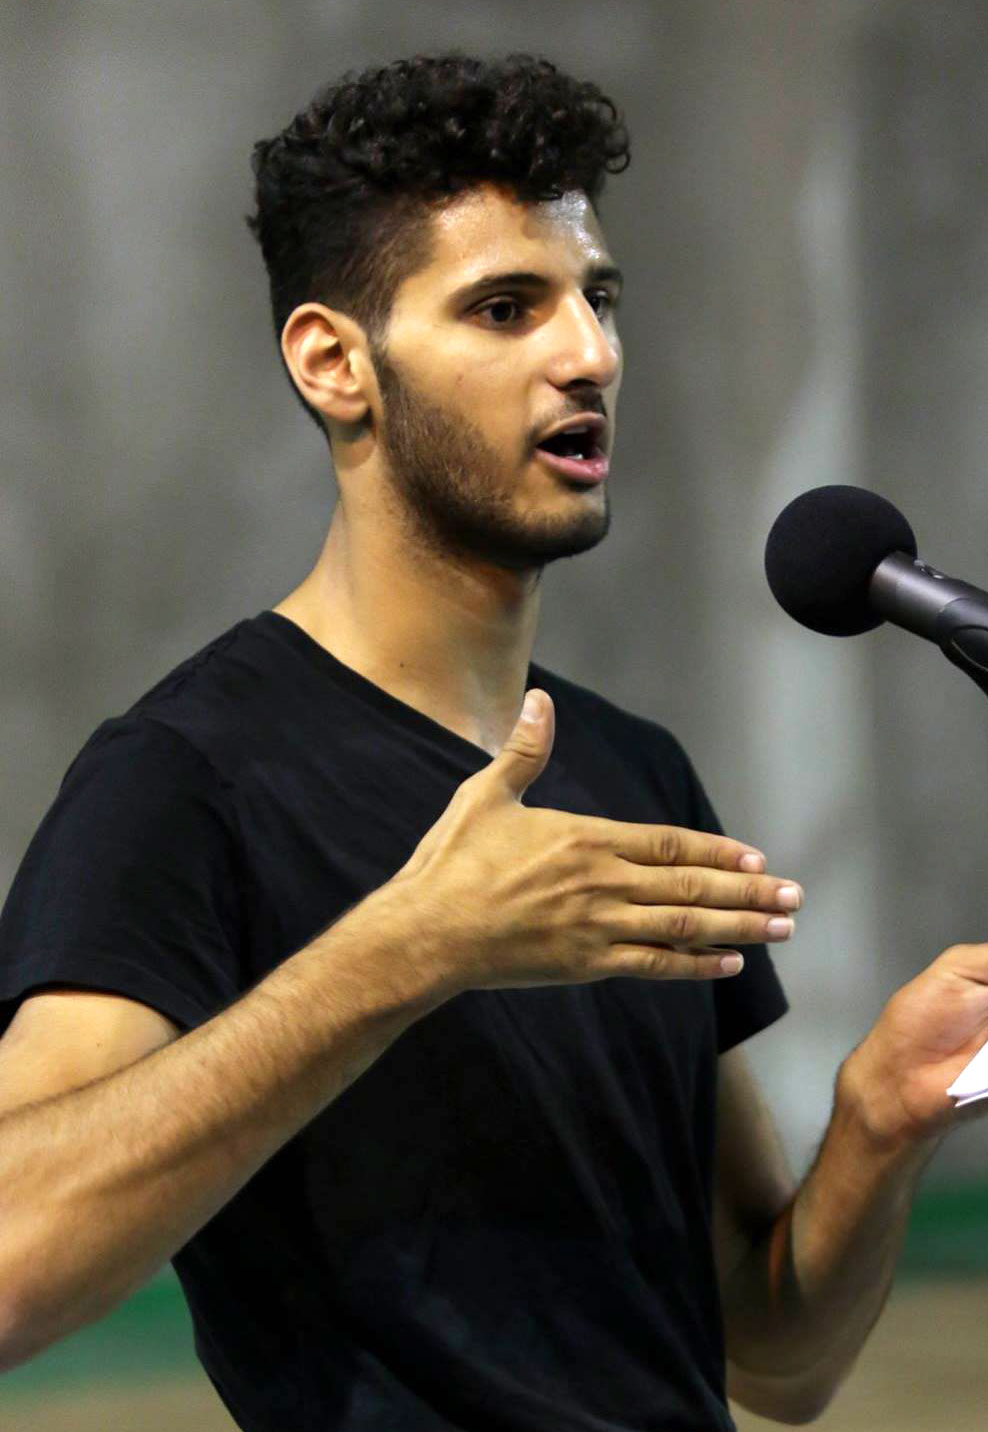 Young man stands in front of microphone talking